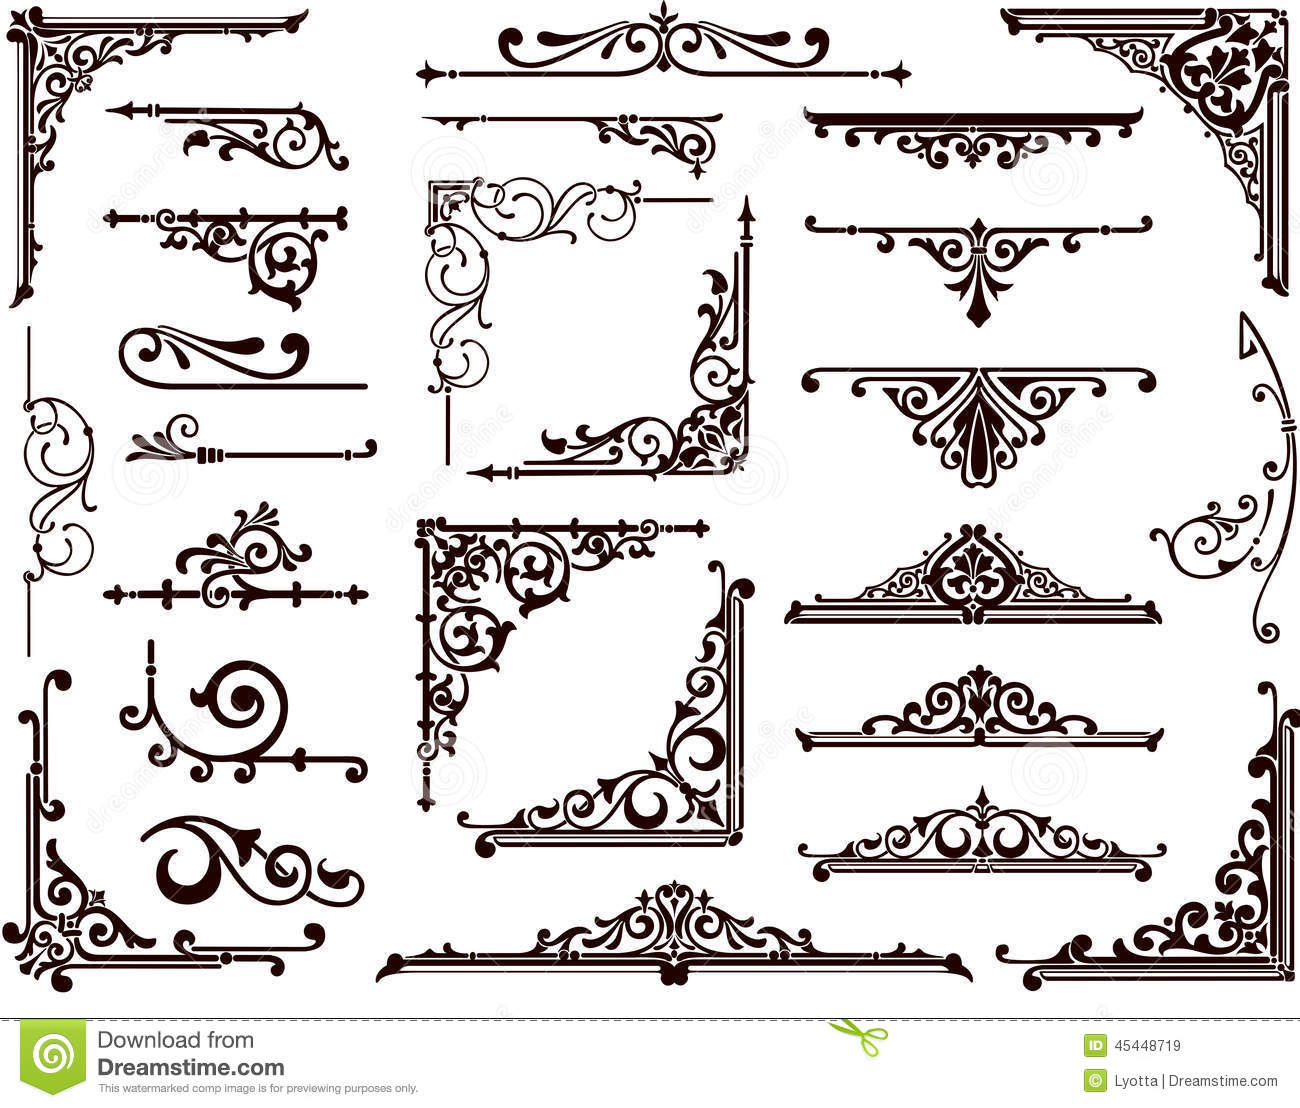 Vector Set Vintage Ornaments, Corners, Borders Stock Vector ...